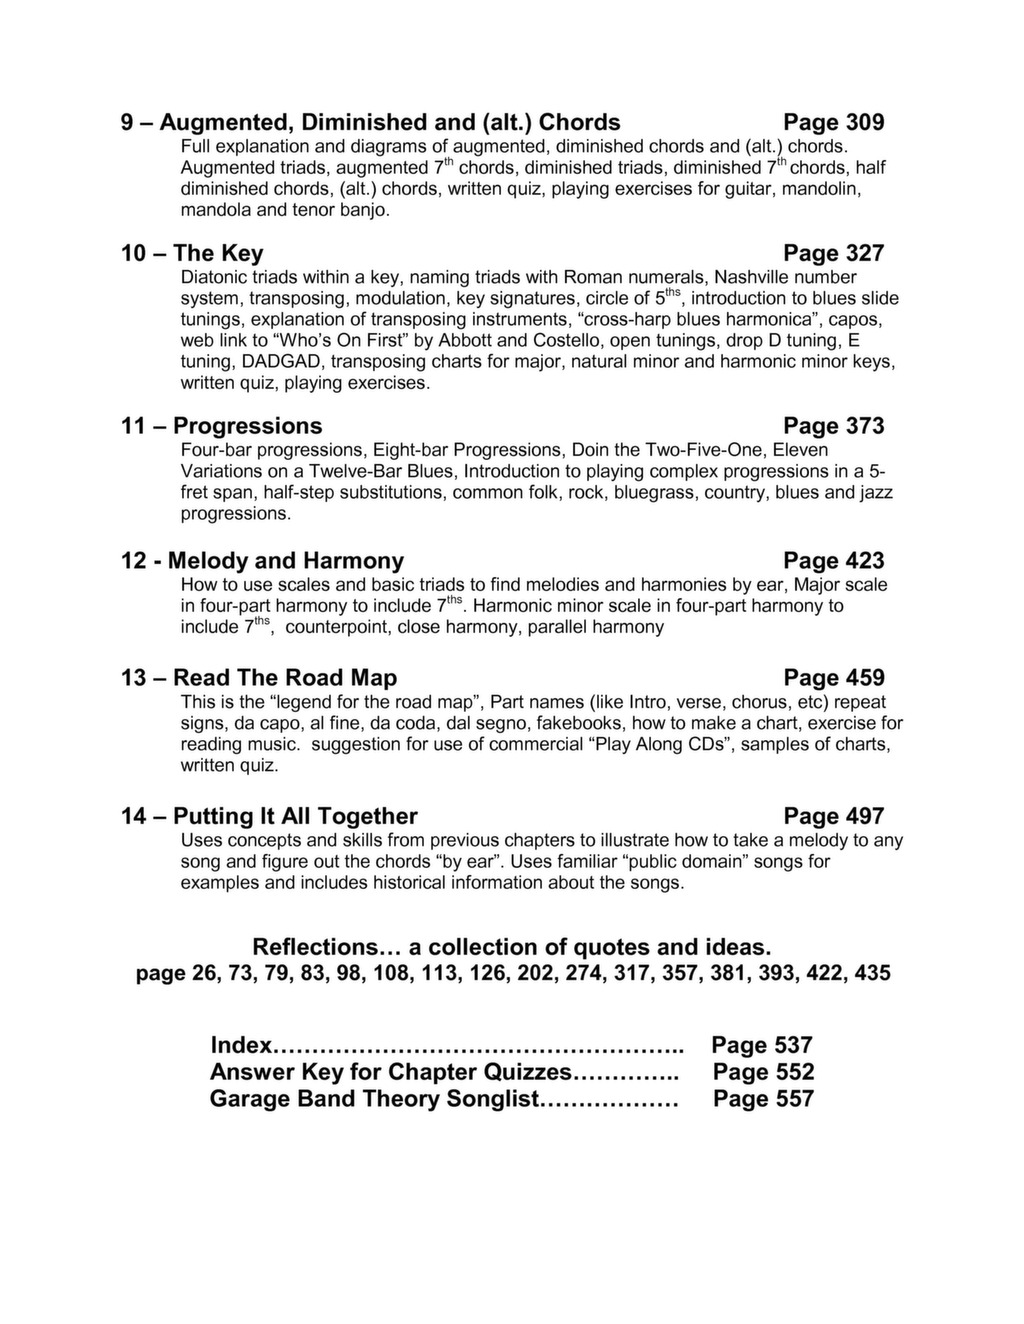 Table of Contents and Index « Garage Band Theory